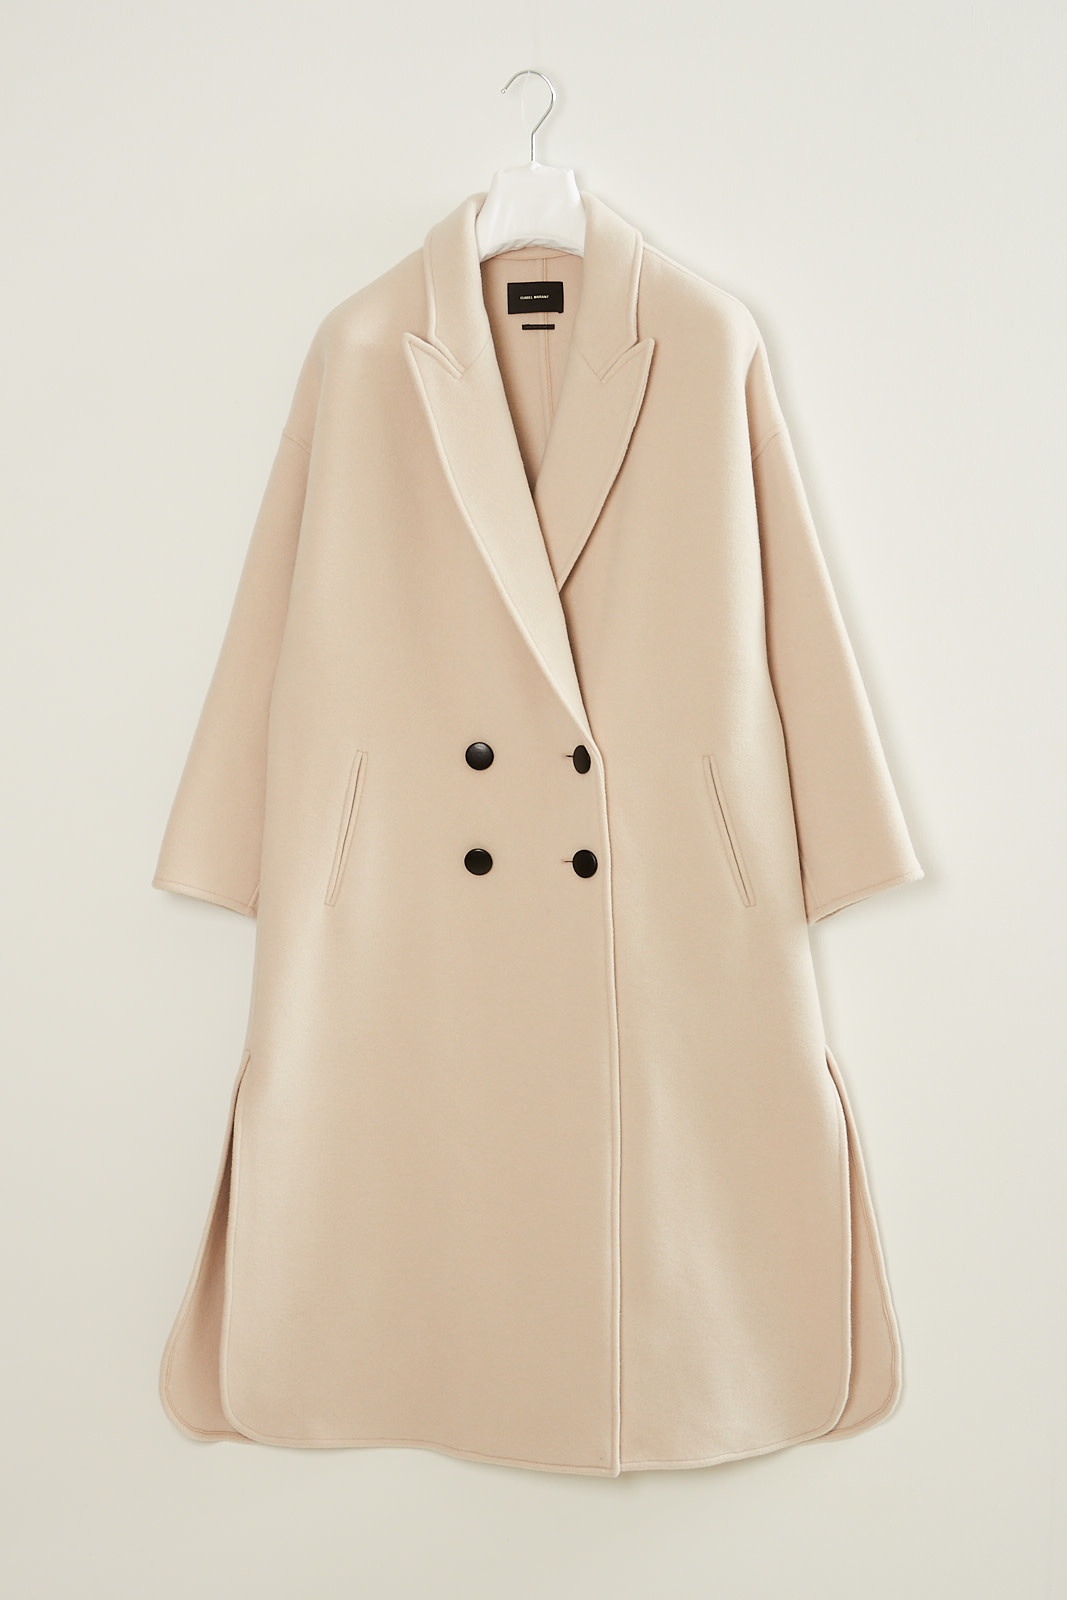 Isabel Marant - Felliot like a double coat